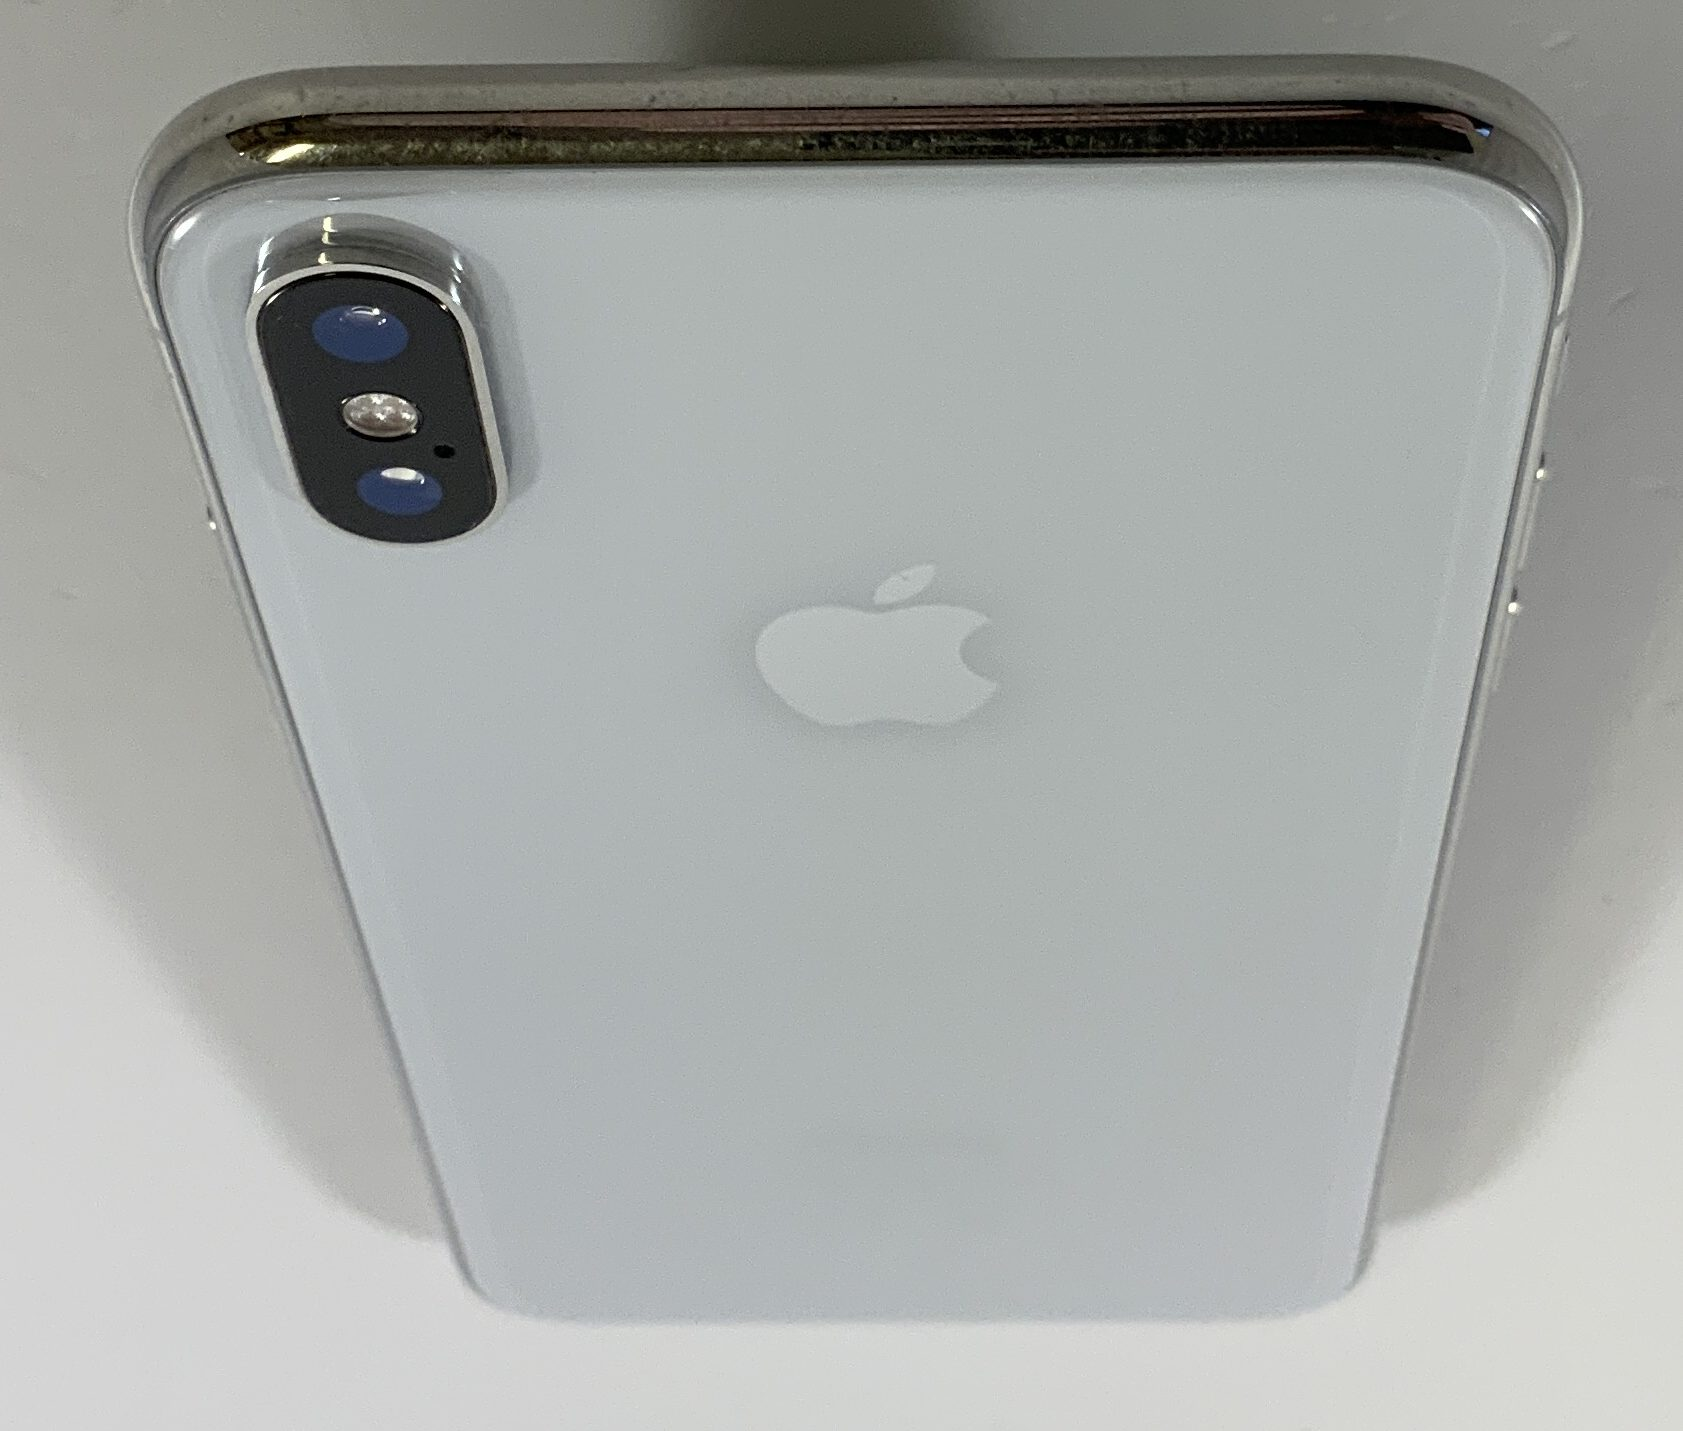 iPhone X 256GB, 256GB, Silver, obraz 4